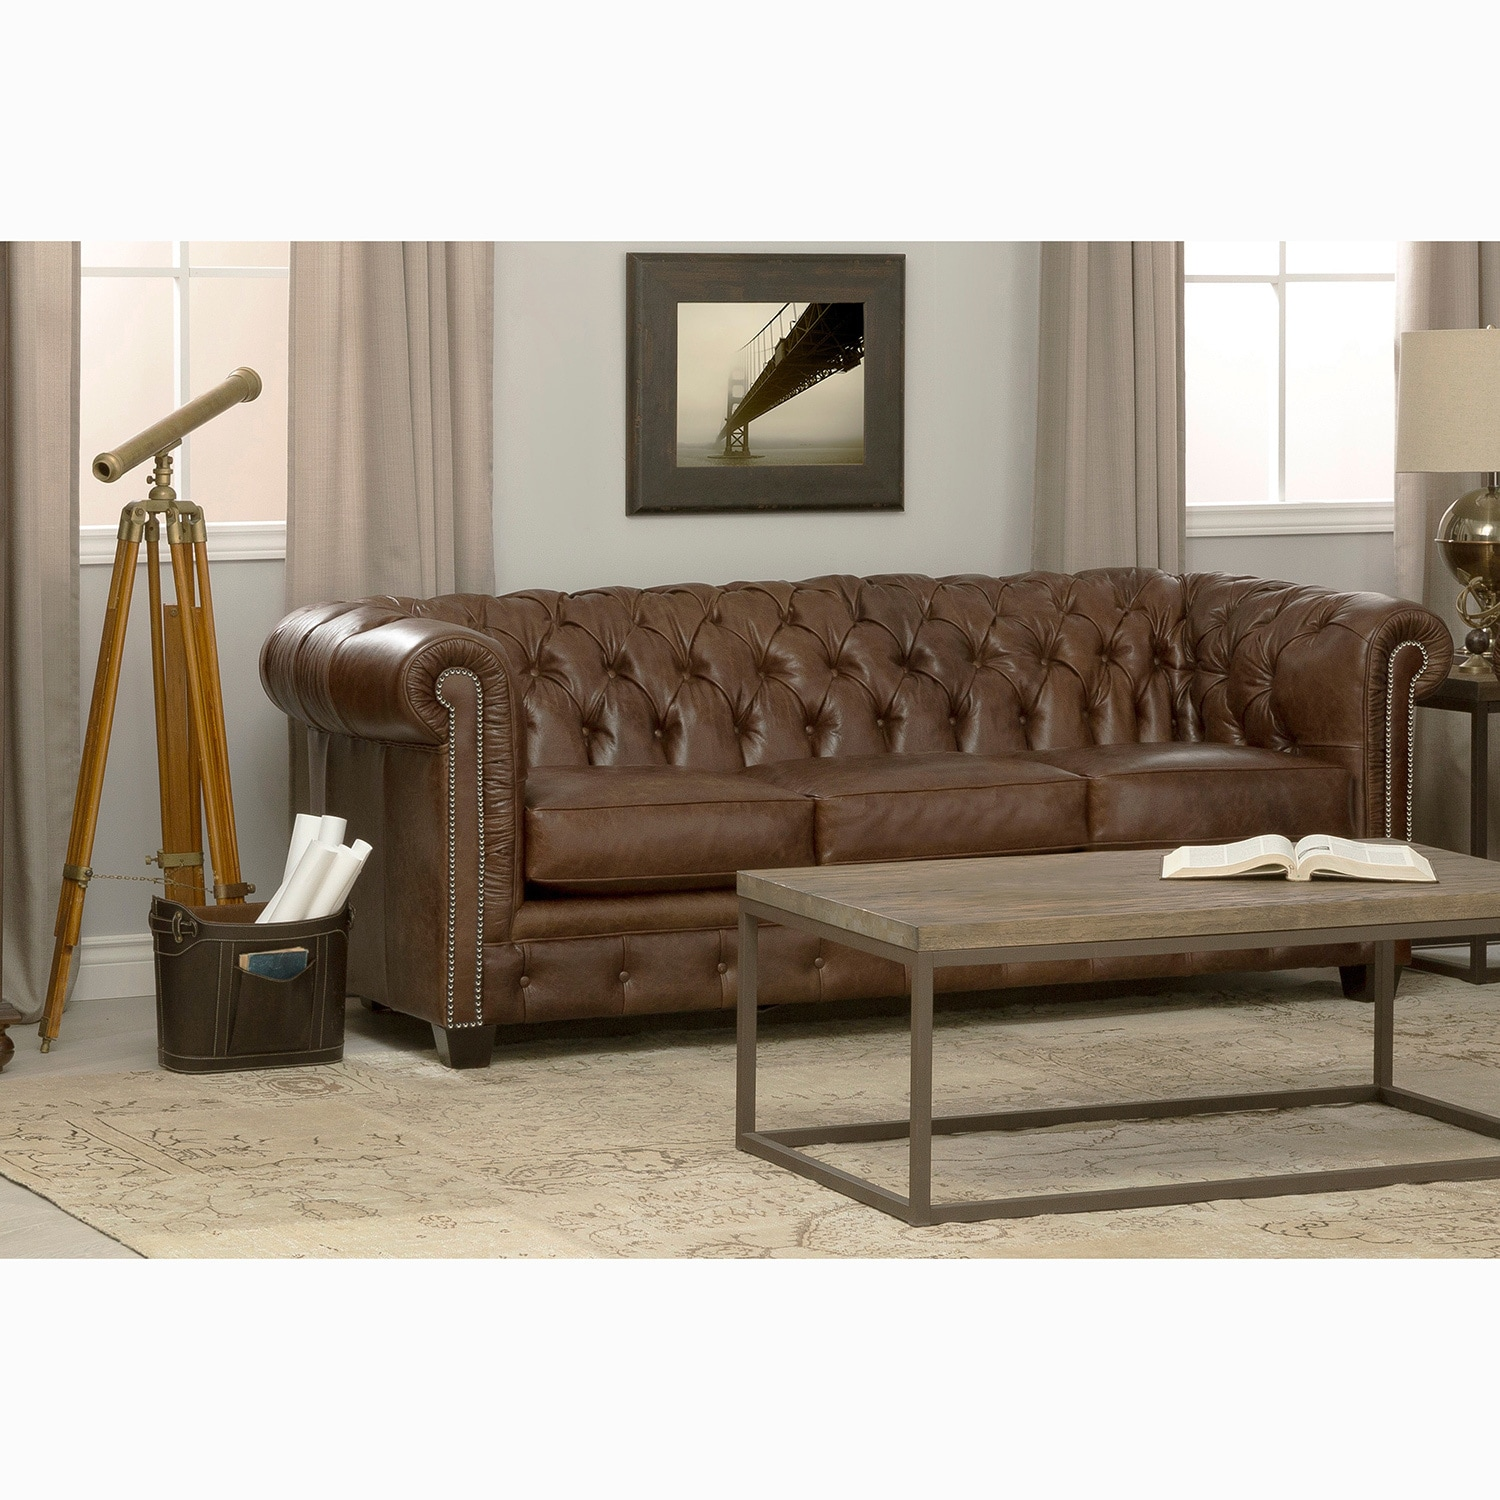 Surprising Hancock Tufted Brown Leather Chesterfield Sofa Pabps2019 Chair Design Images Pabps2019Com